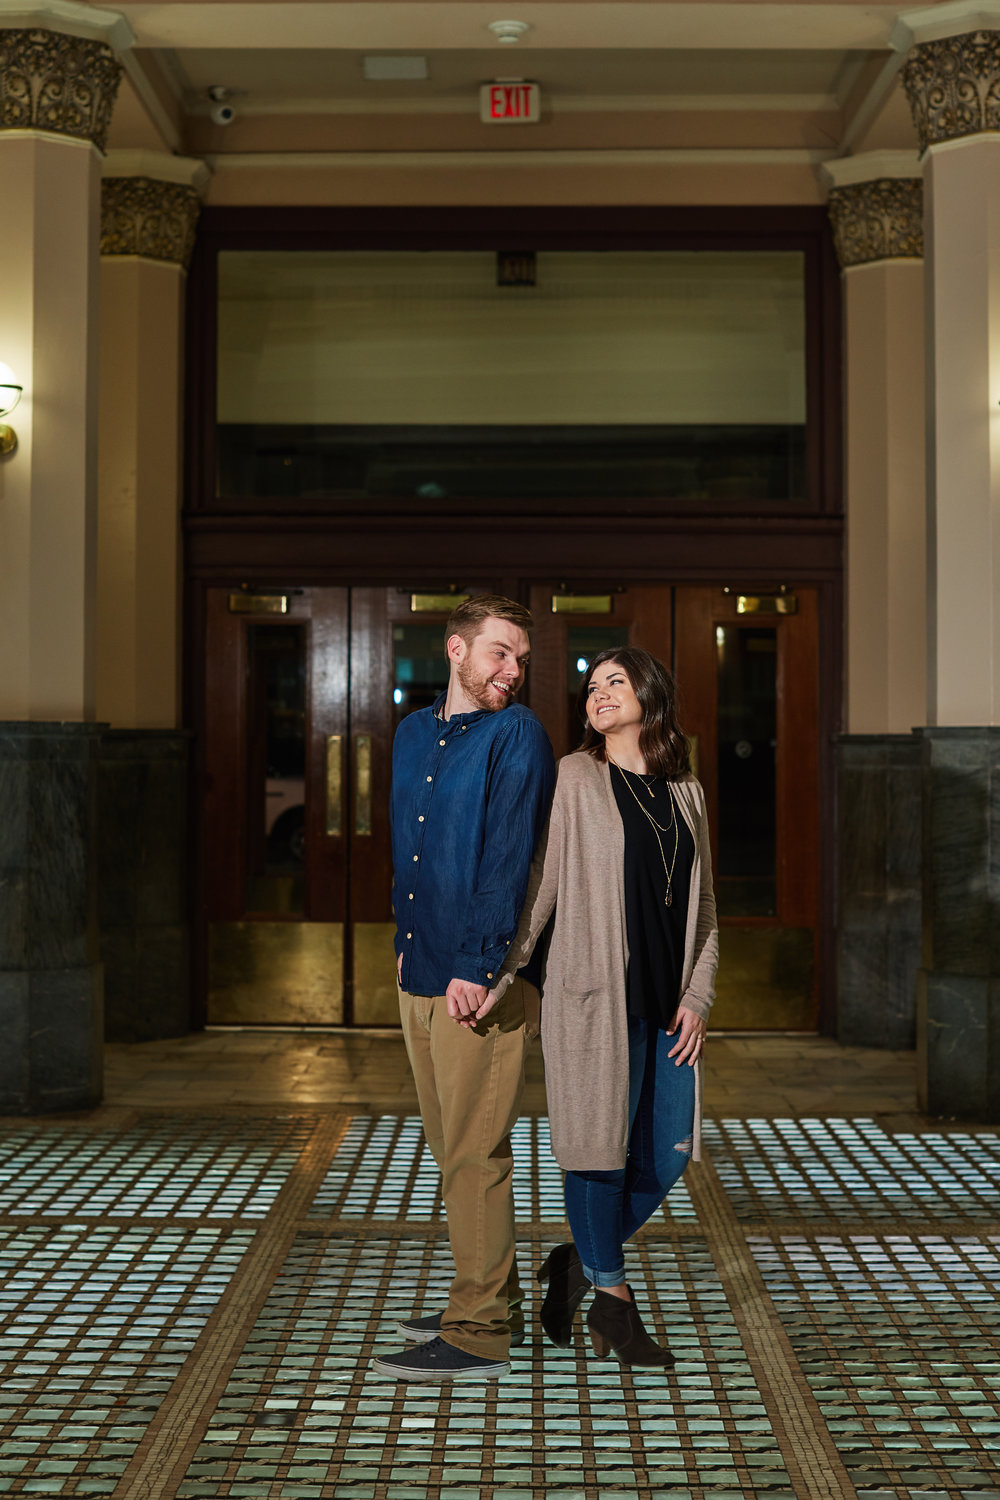 Union Station Engagement Session Photos and Photographs by St Louis Wedding Photographers Oldani Photography